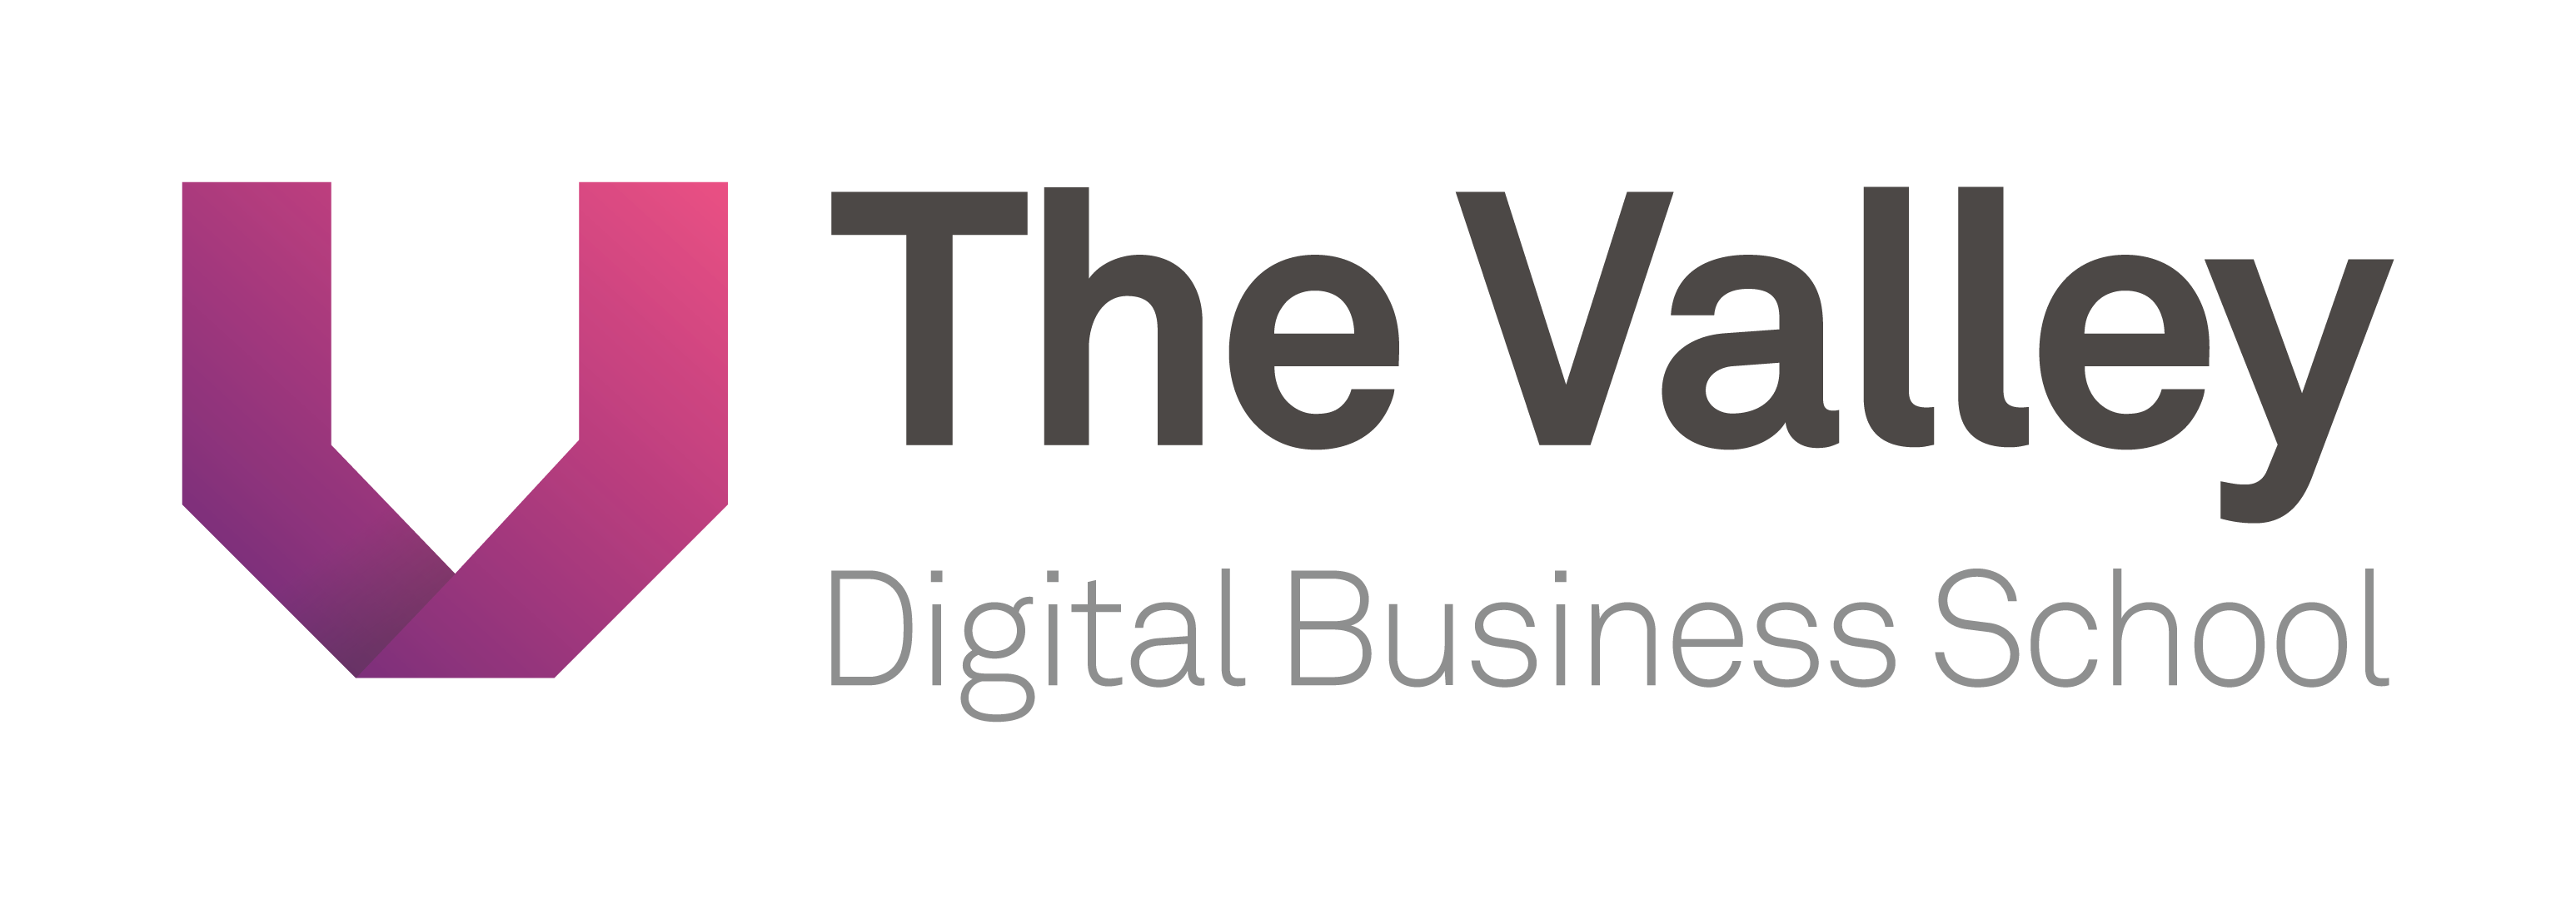 Logotipo The Valley Digital Business School